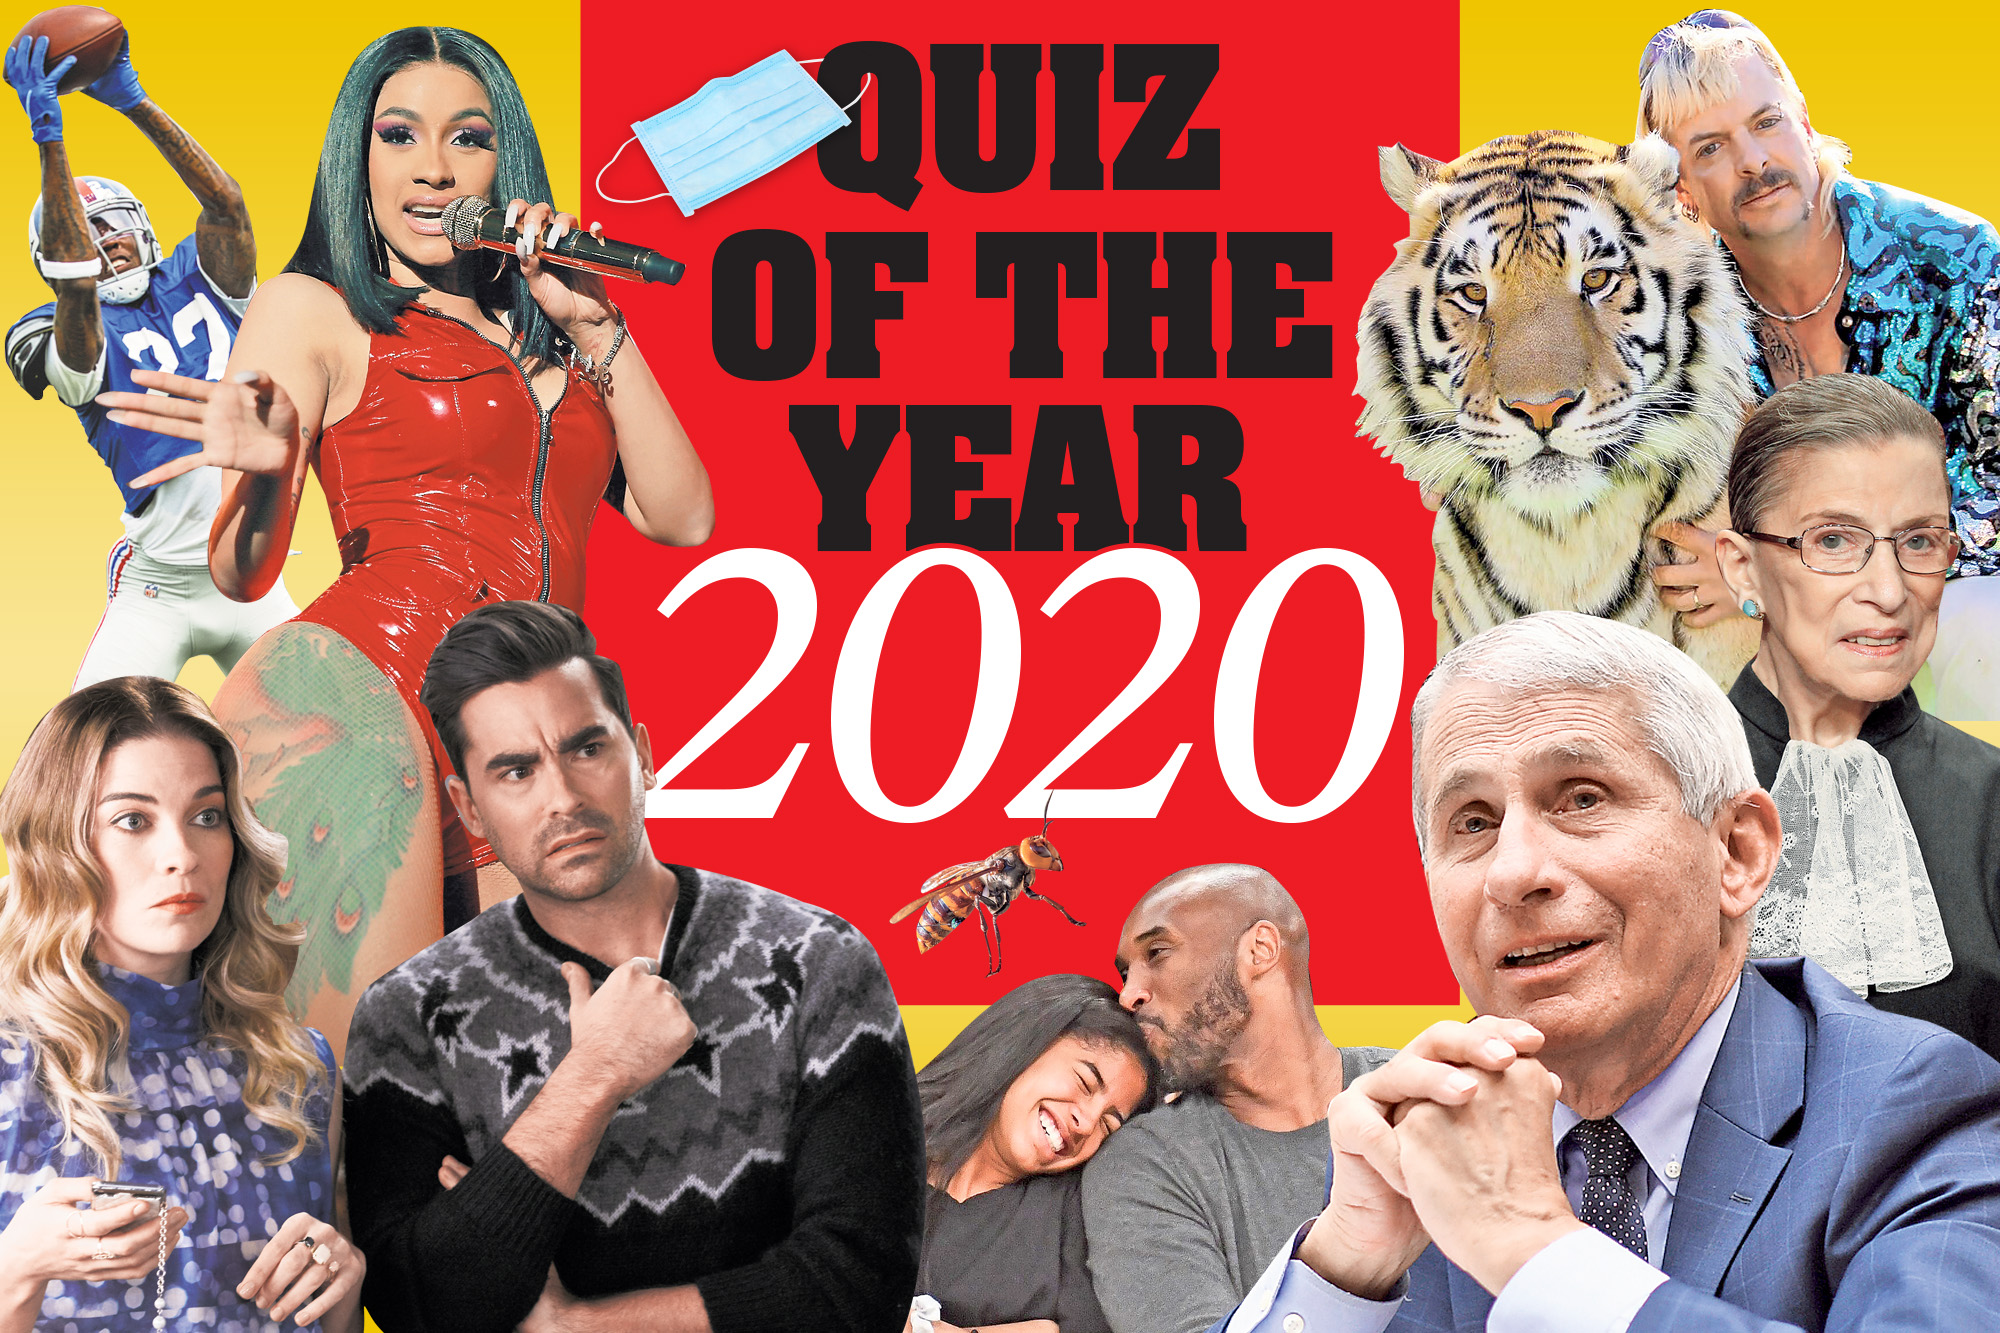 How well do you remember 2020? Take The Post's quiz